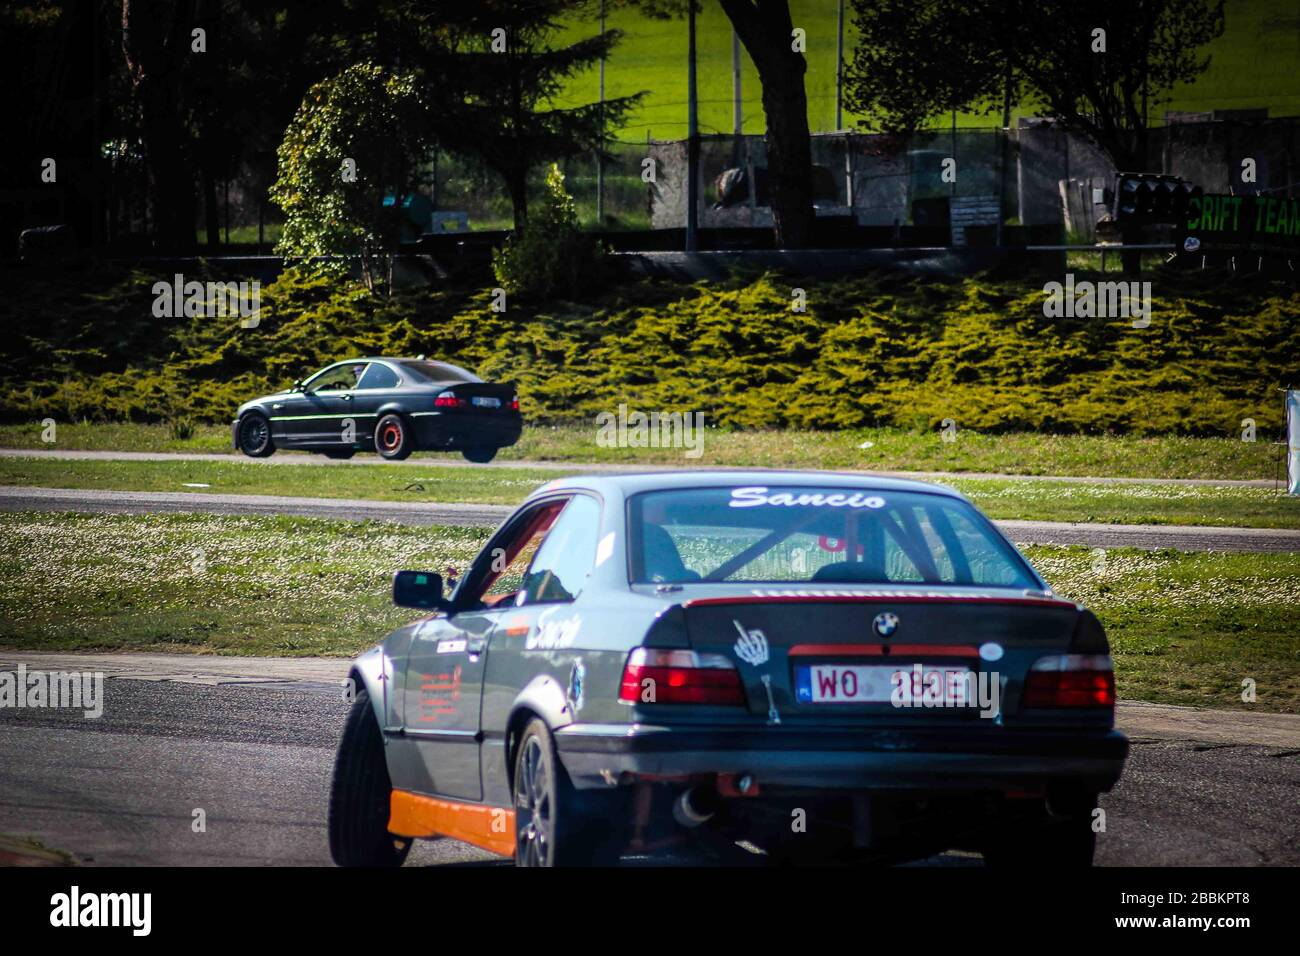 Bmw M3 Modified By Drift At The Go Kart Track In The Marche Region Of Italy Stock Photo Alamy